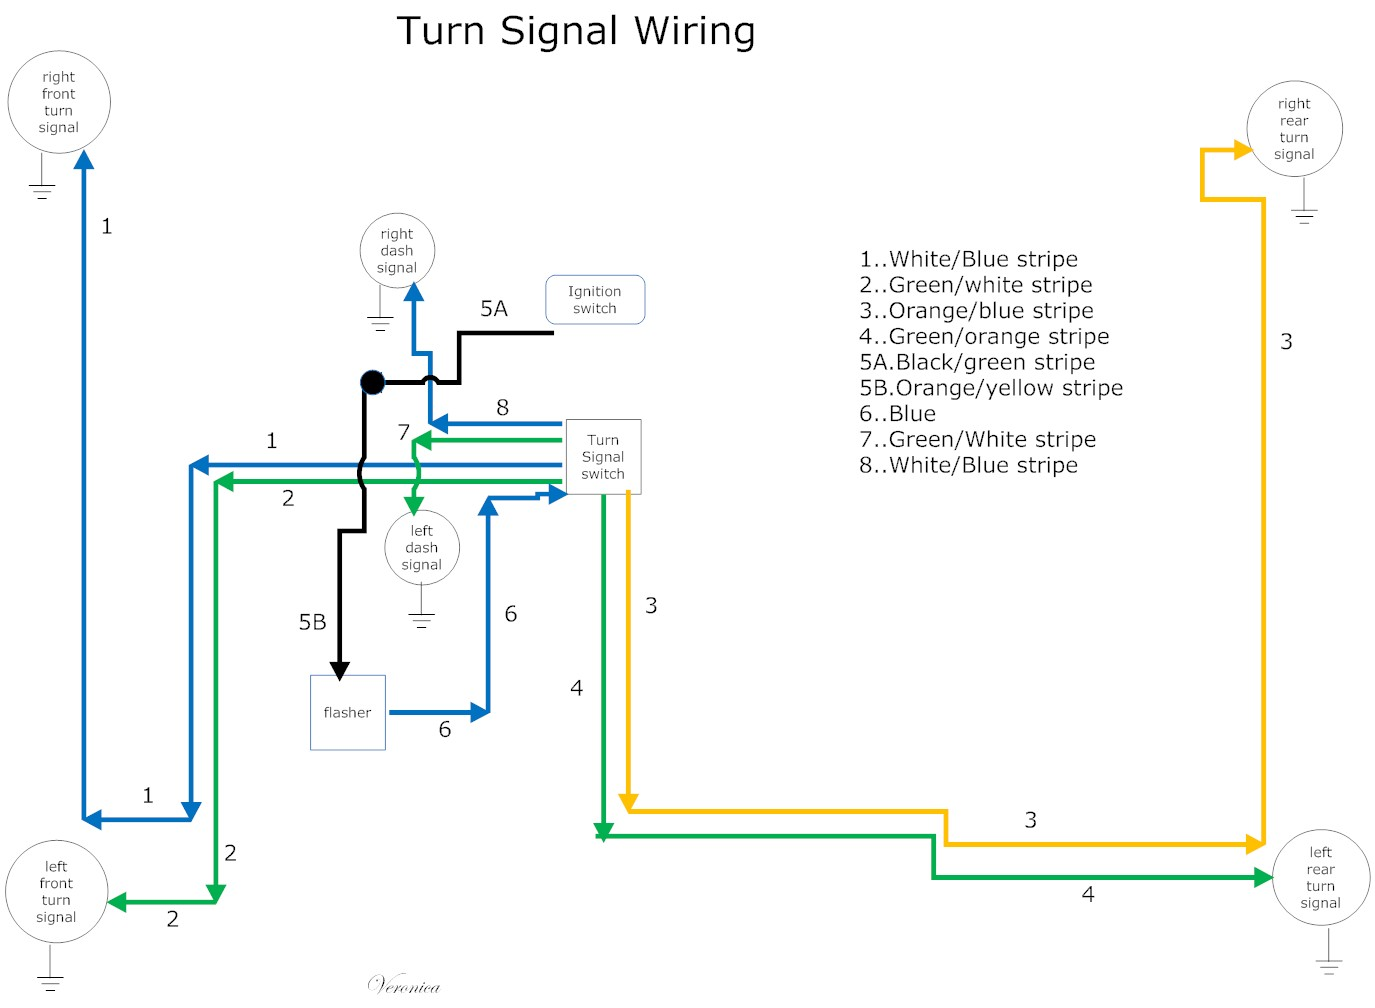 wiring diagram signals wiring diagramford turn signal switch diagram wiring diagram detailedthe care and feeding of ponies 1965 1966 mustang